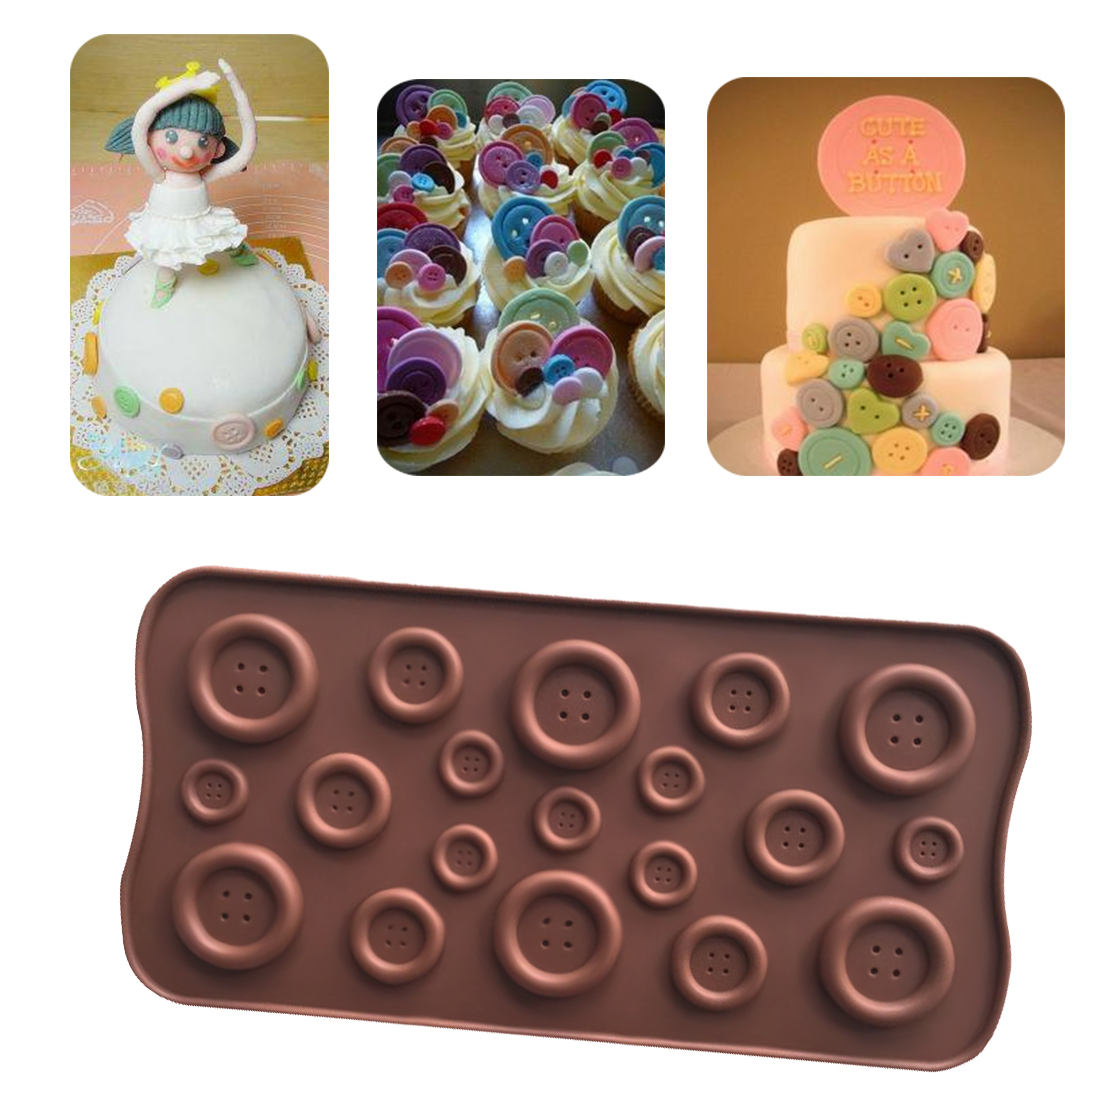 4-Round Cake Mold Soap Mold Mold Silicone Mould For Candy Chocolate Cookie Craft